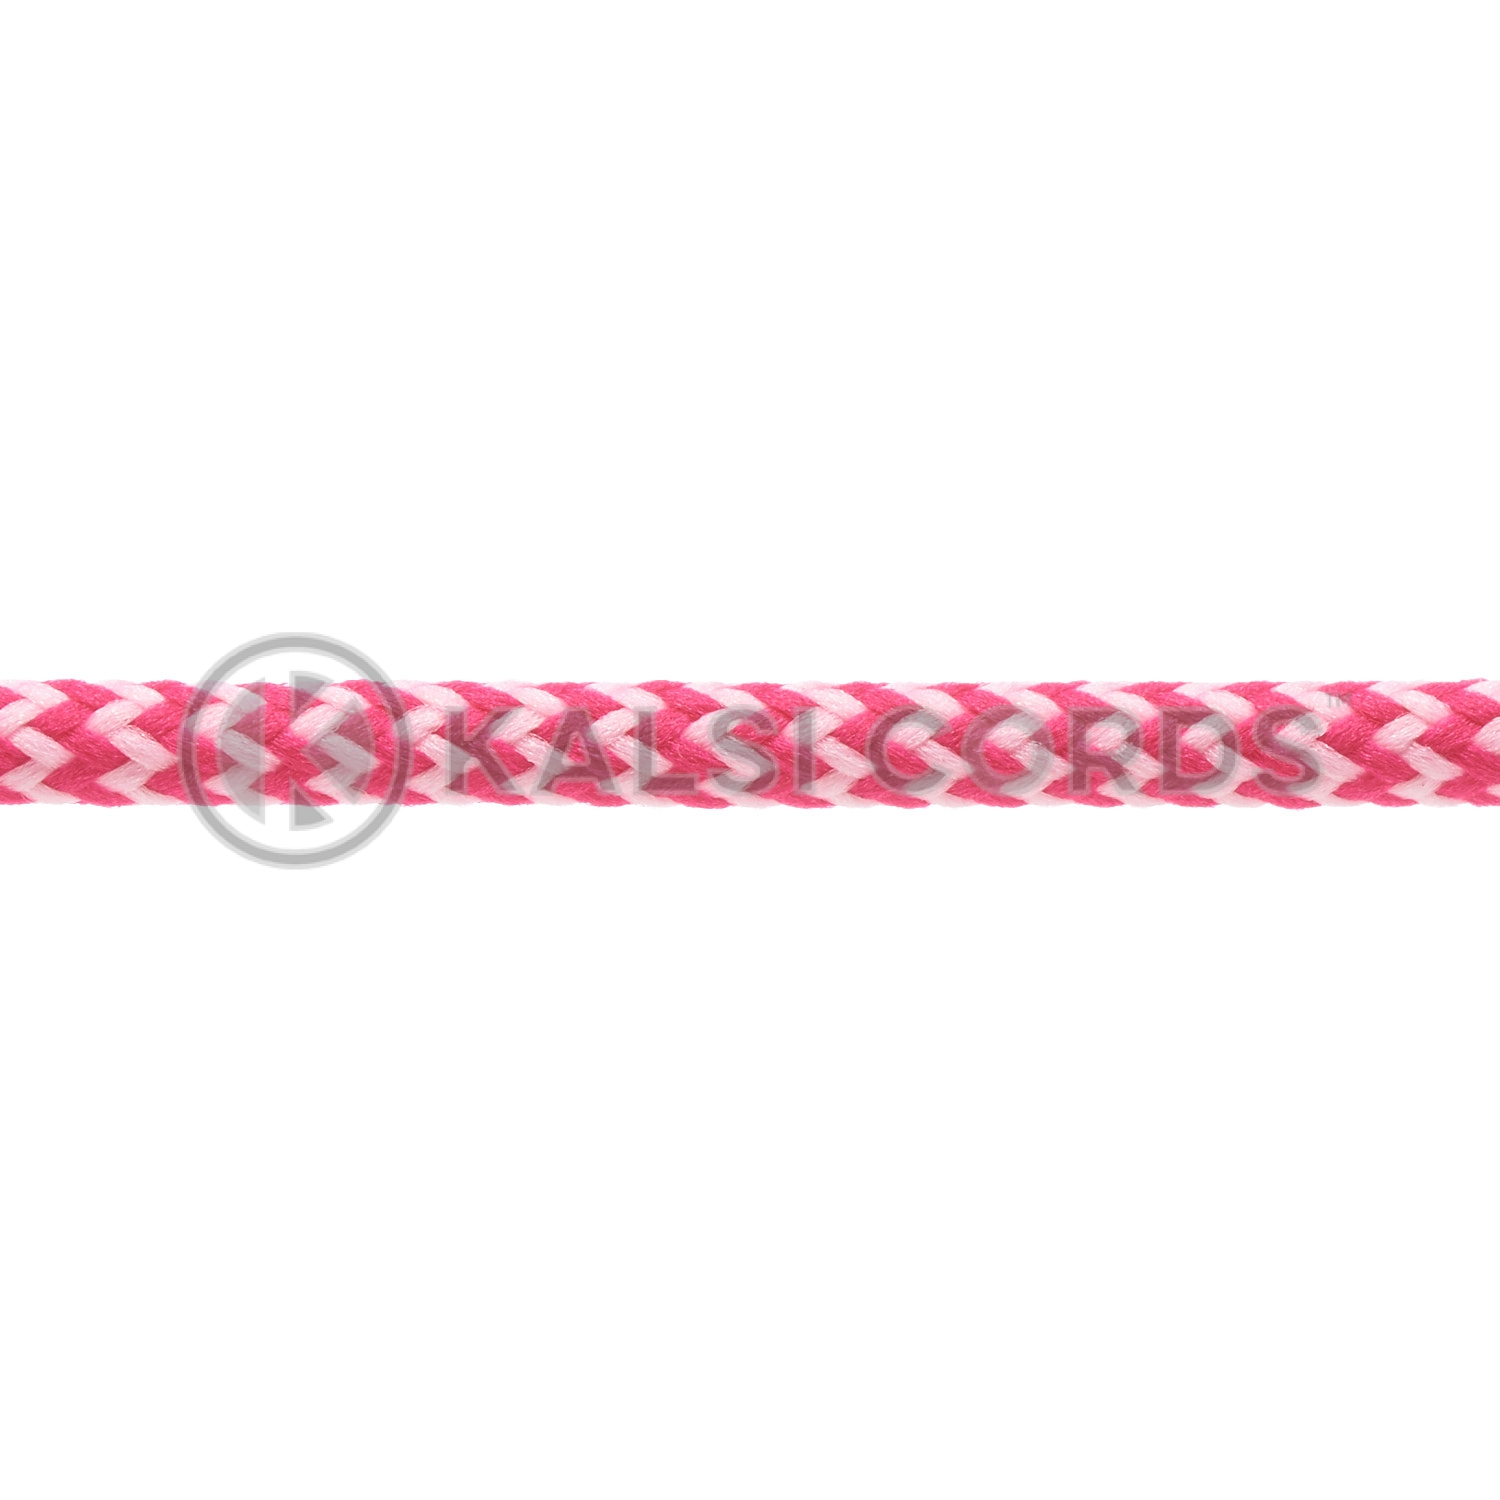 T621 5mm Round Cord Shoe Laces Cerise Baby Pink Herringbone Pattern Kids Trainers Adults Hiking Walking Boots Kalsi Cords